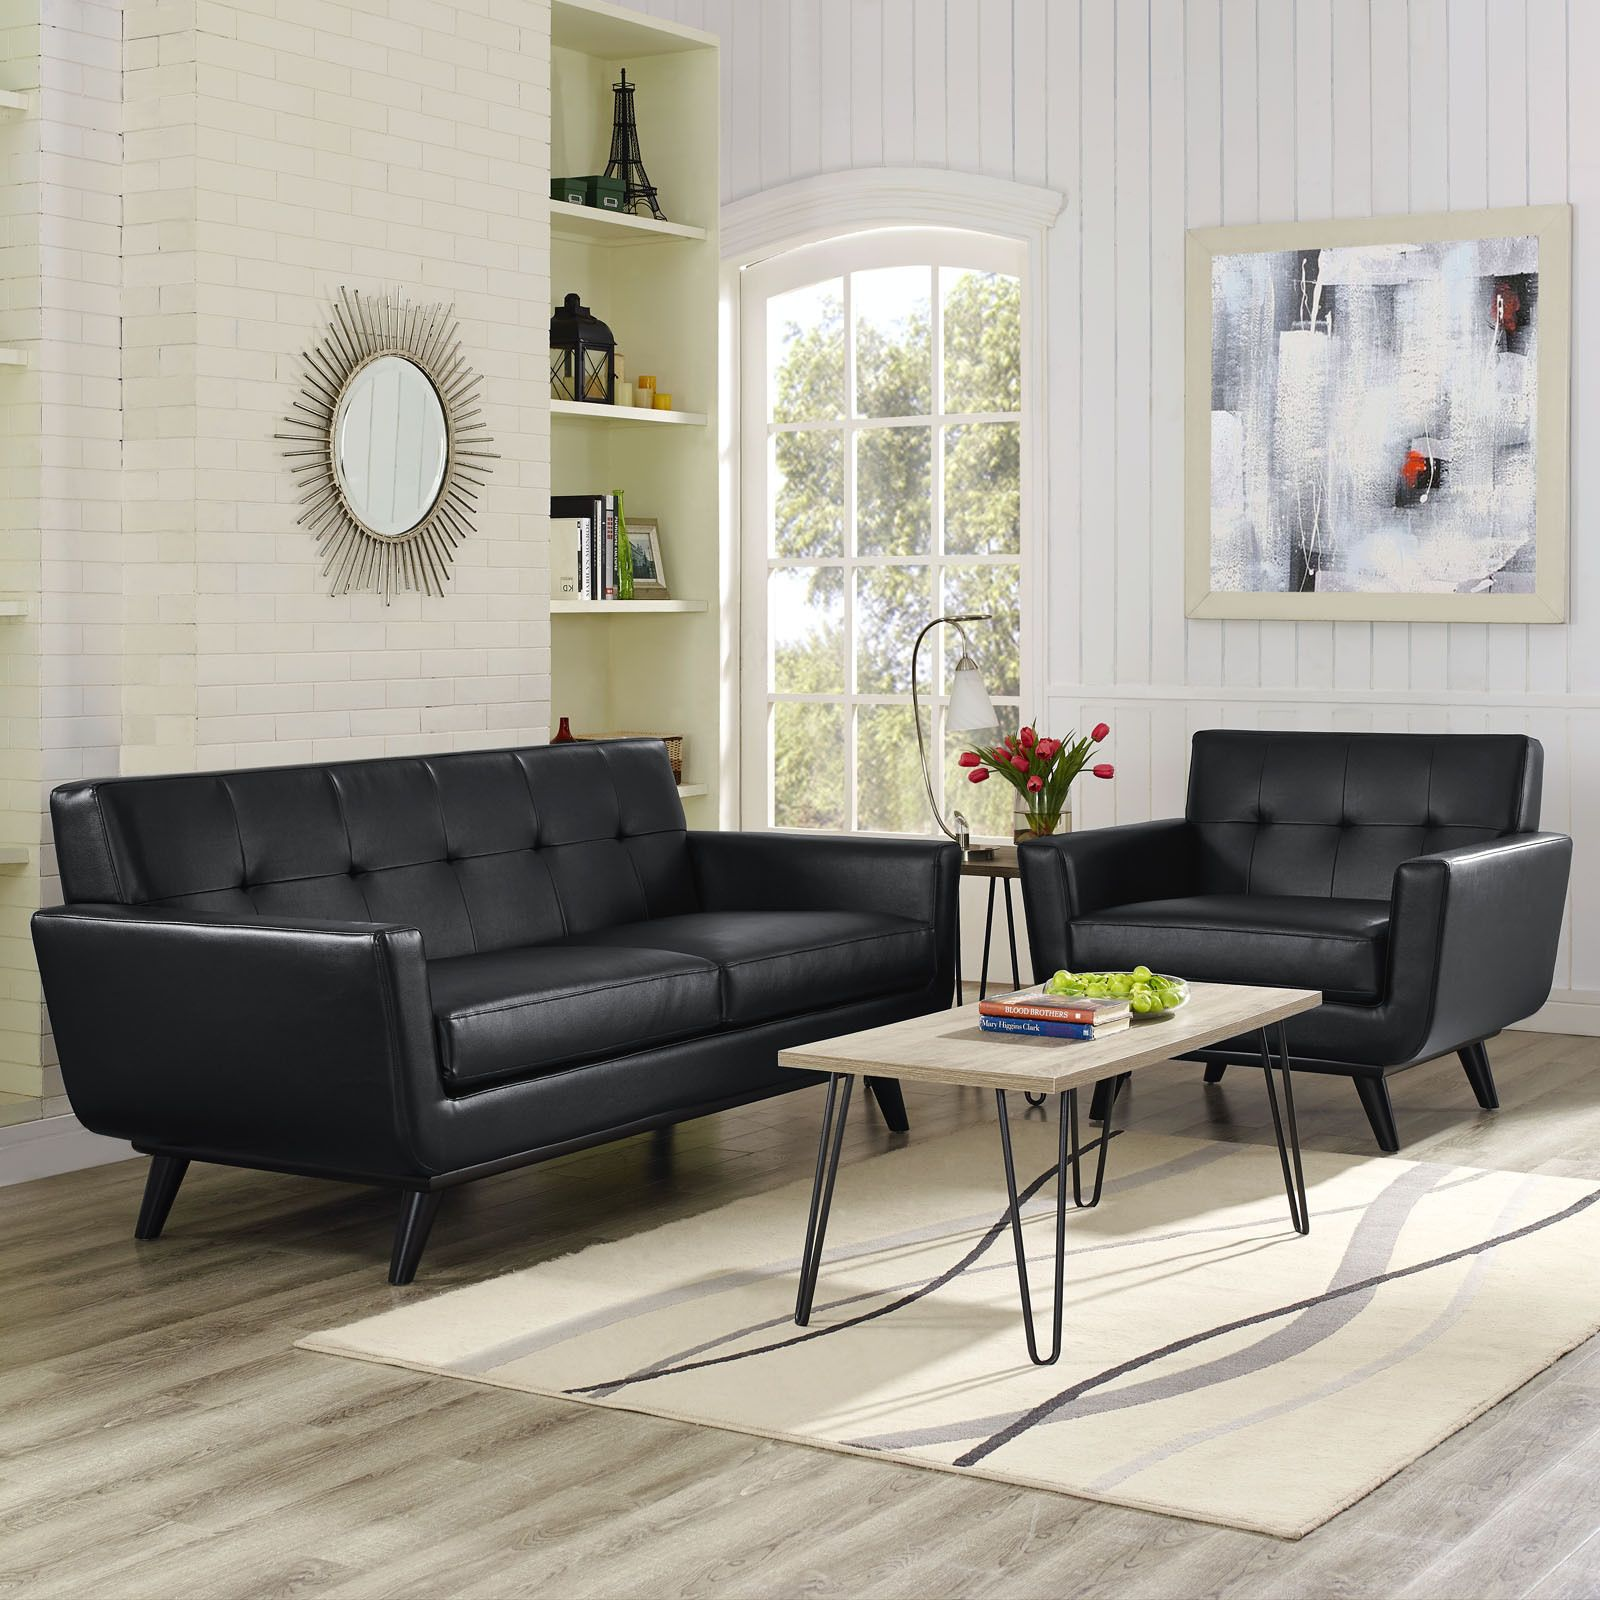 Modway Absorb 2-piece Leather Armchair/ Loveseat Living Room Set (